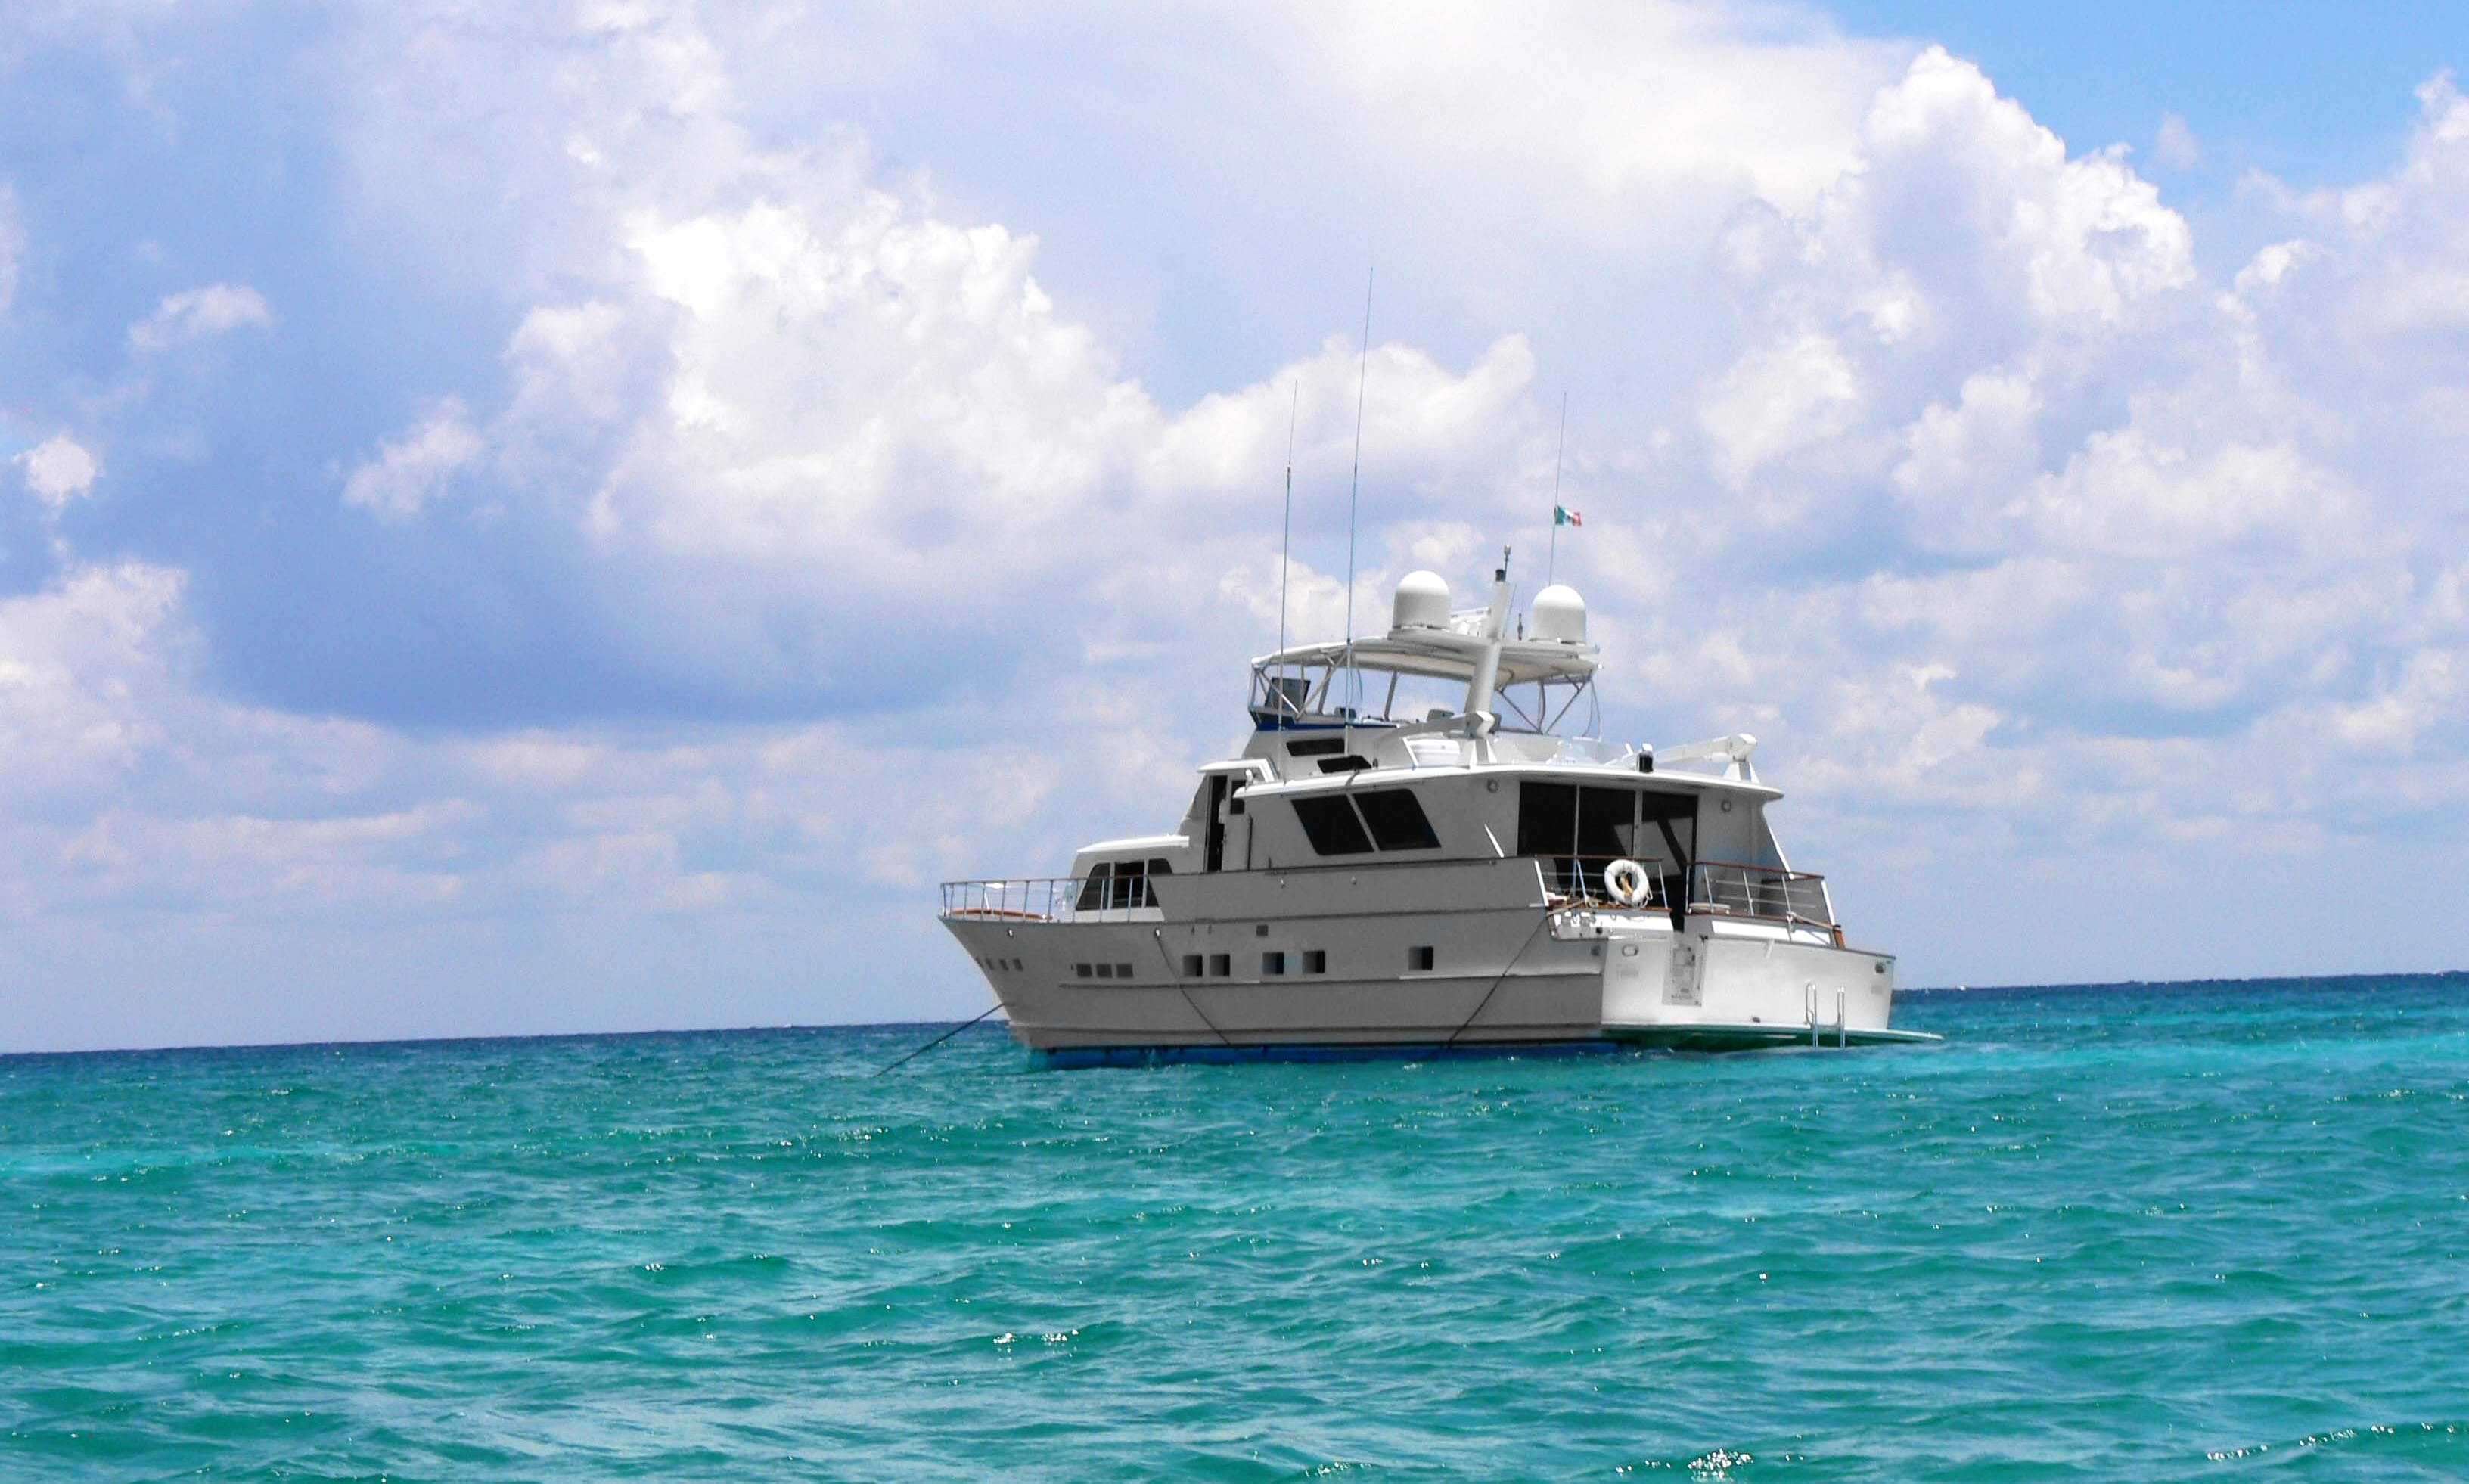 Experience a Fully Equipped 80' Power Mega Yacht near Akumal